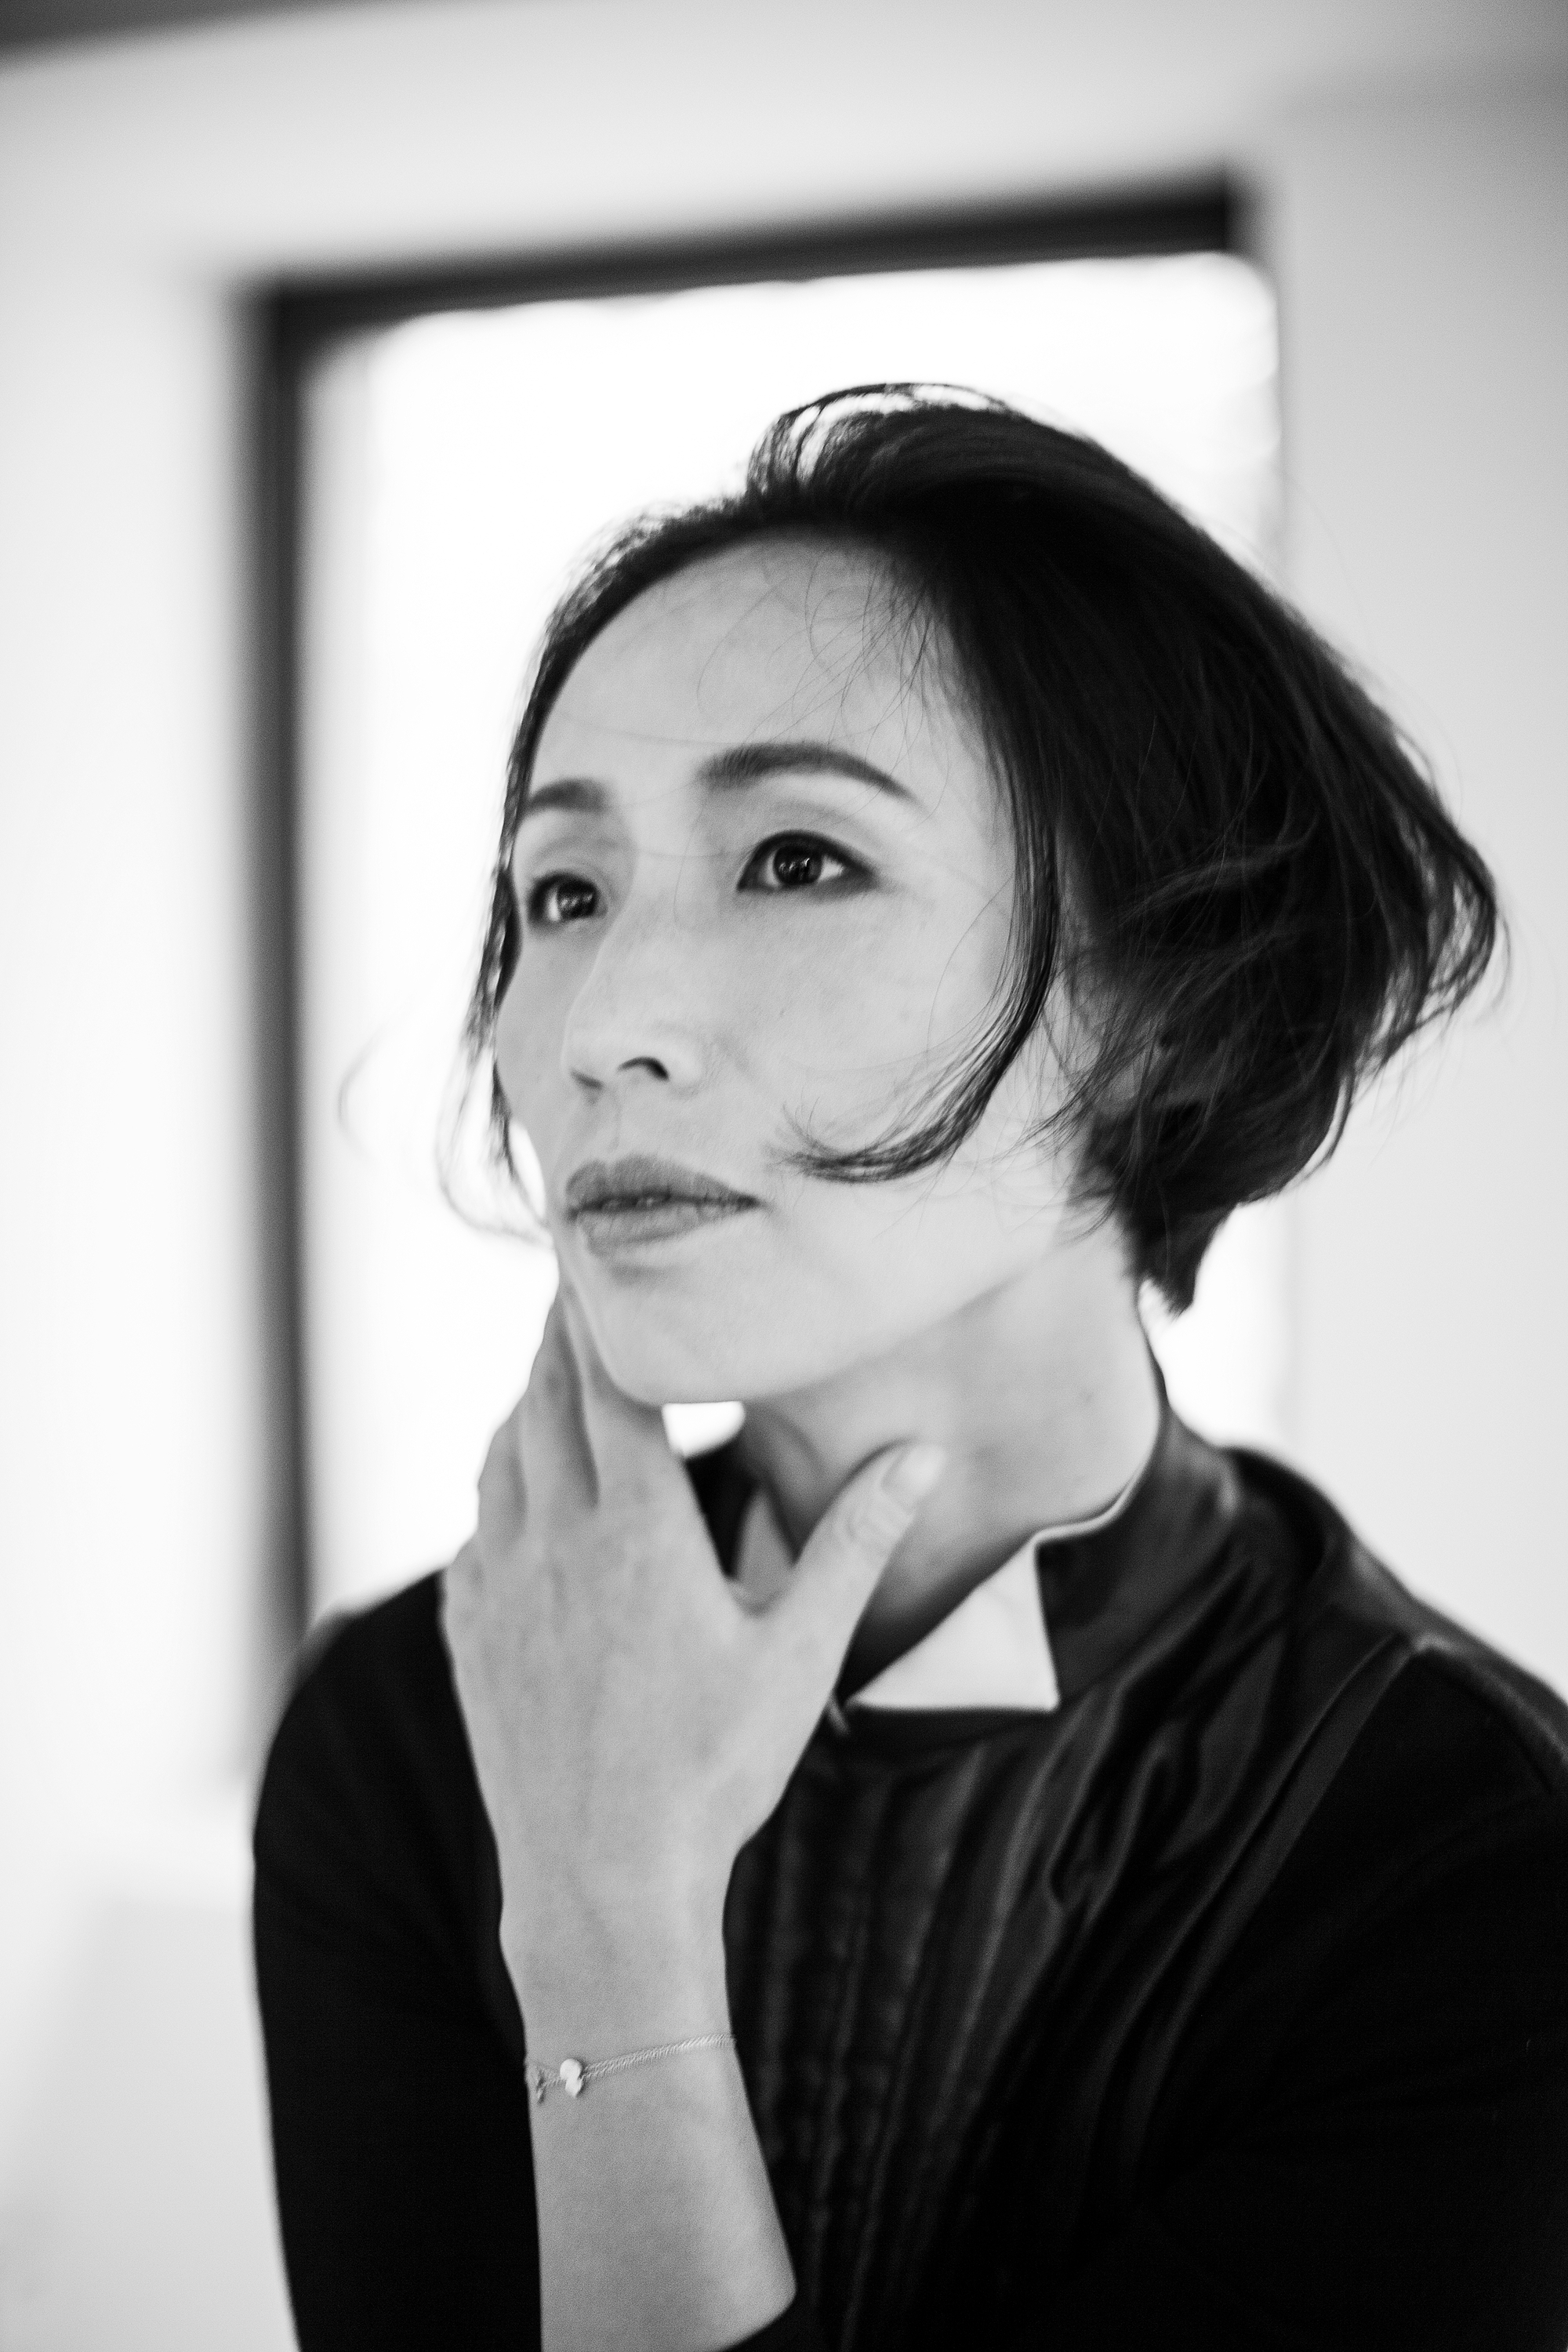 Jiang Qiong Er, founder, ceo and artistic director of Shang Xia